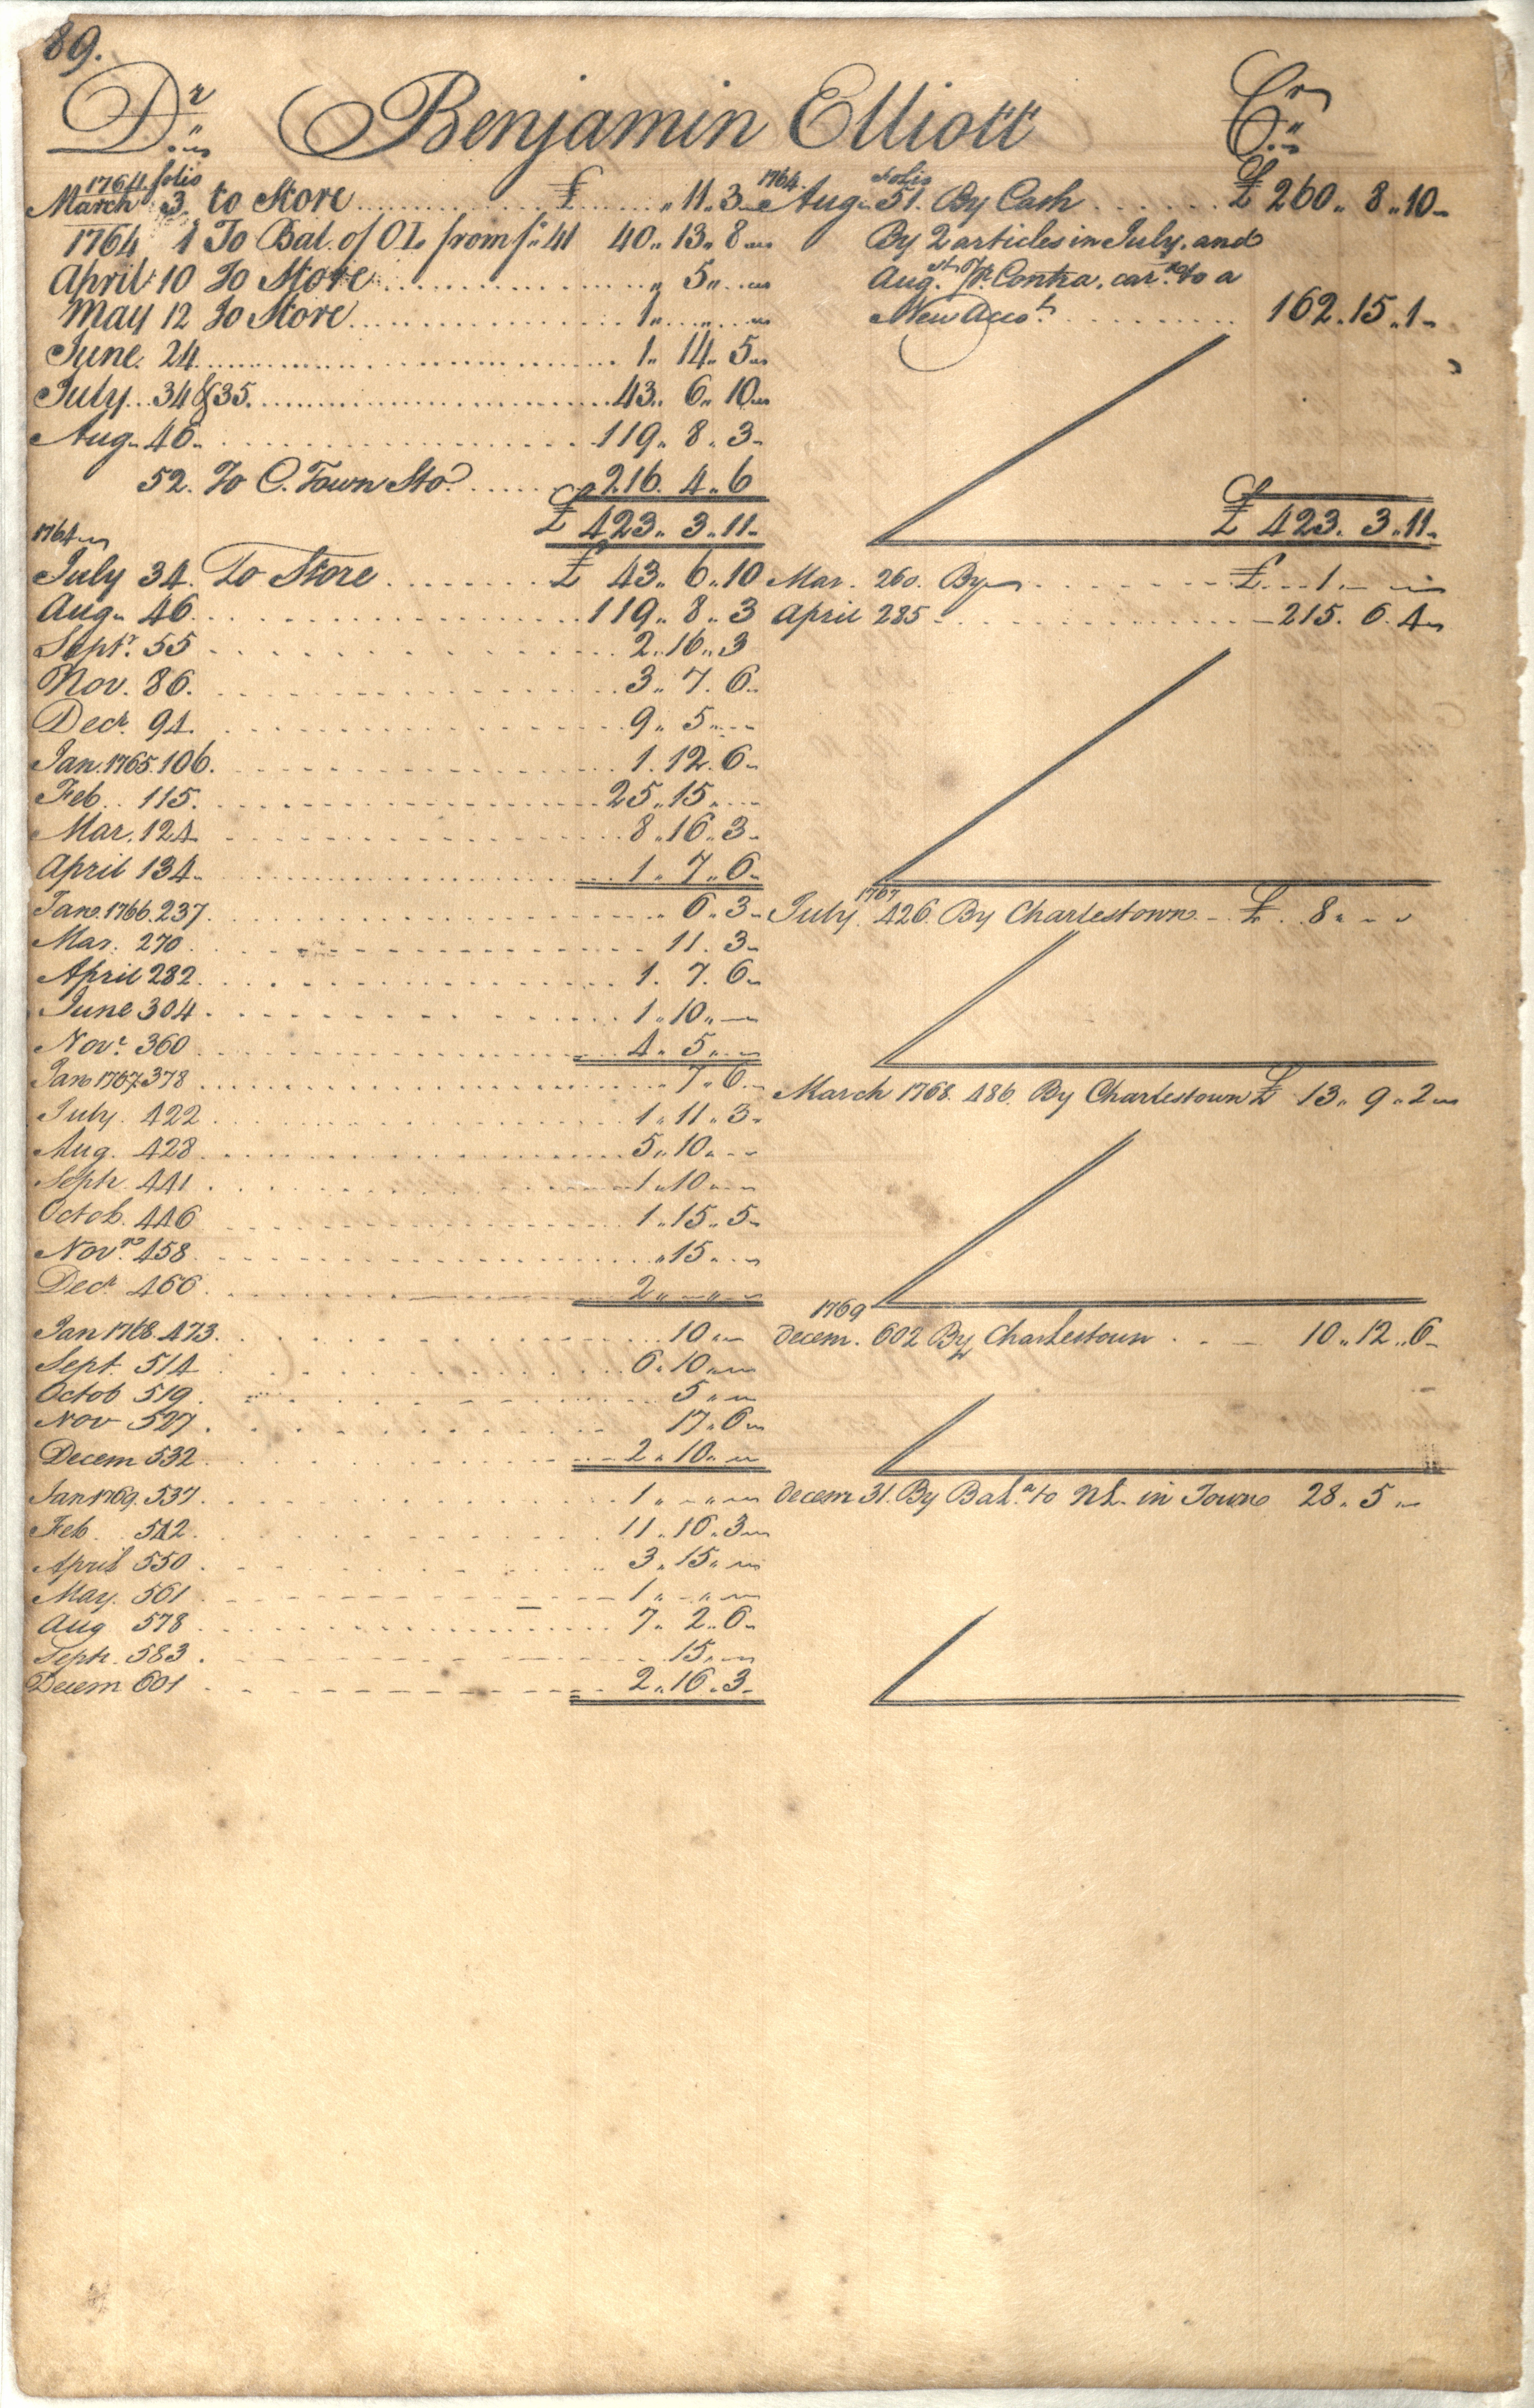 Plowden Weston's Business Ledger, page 89